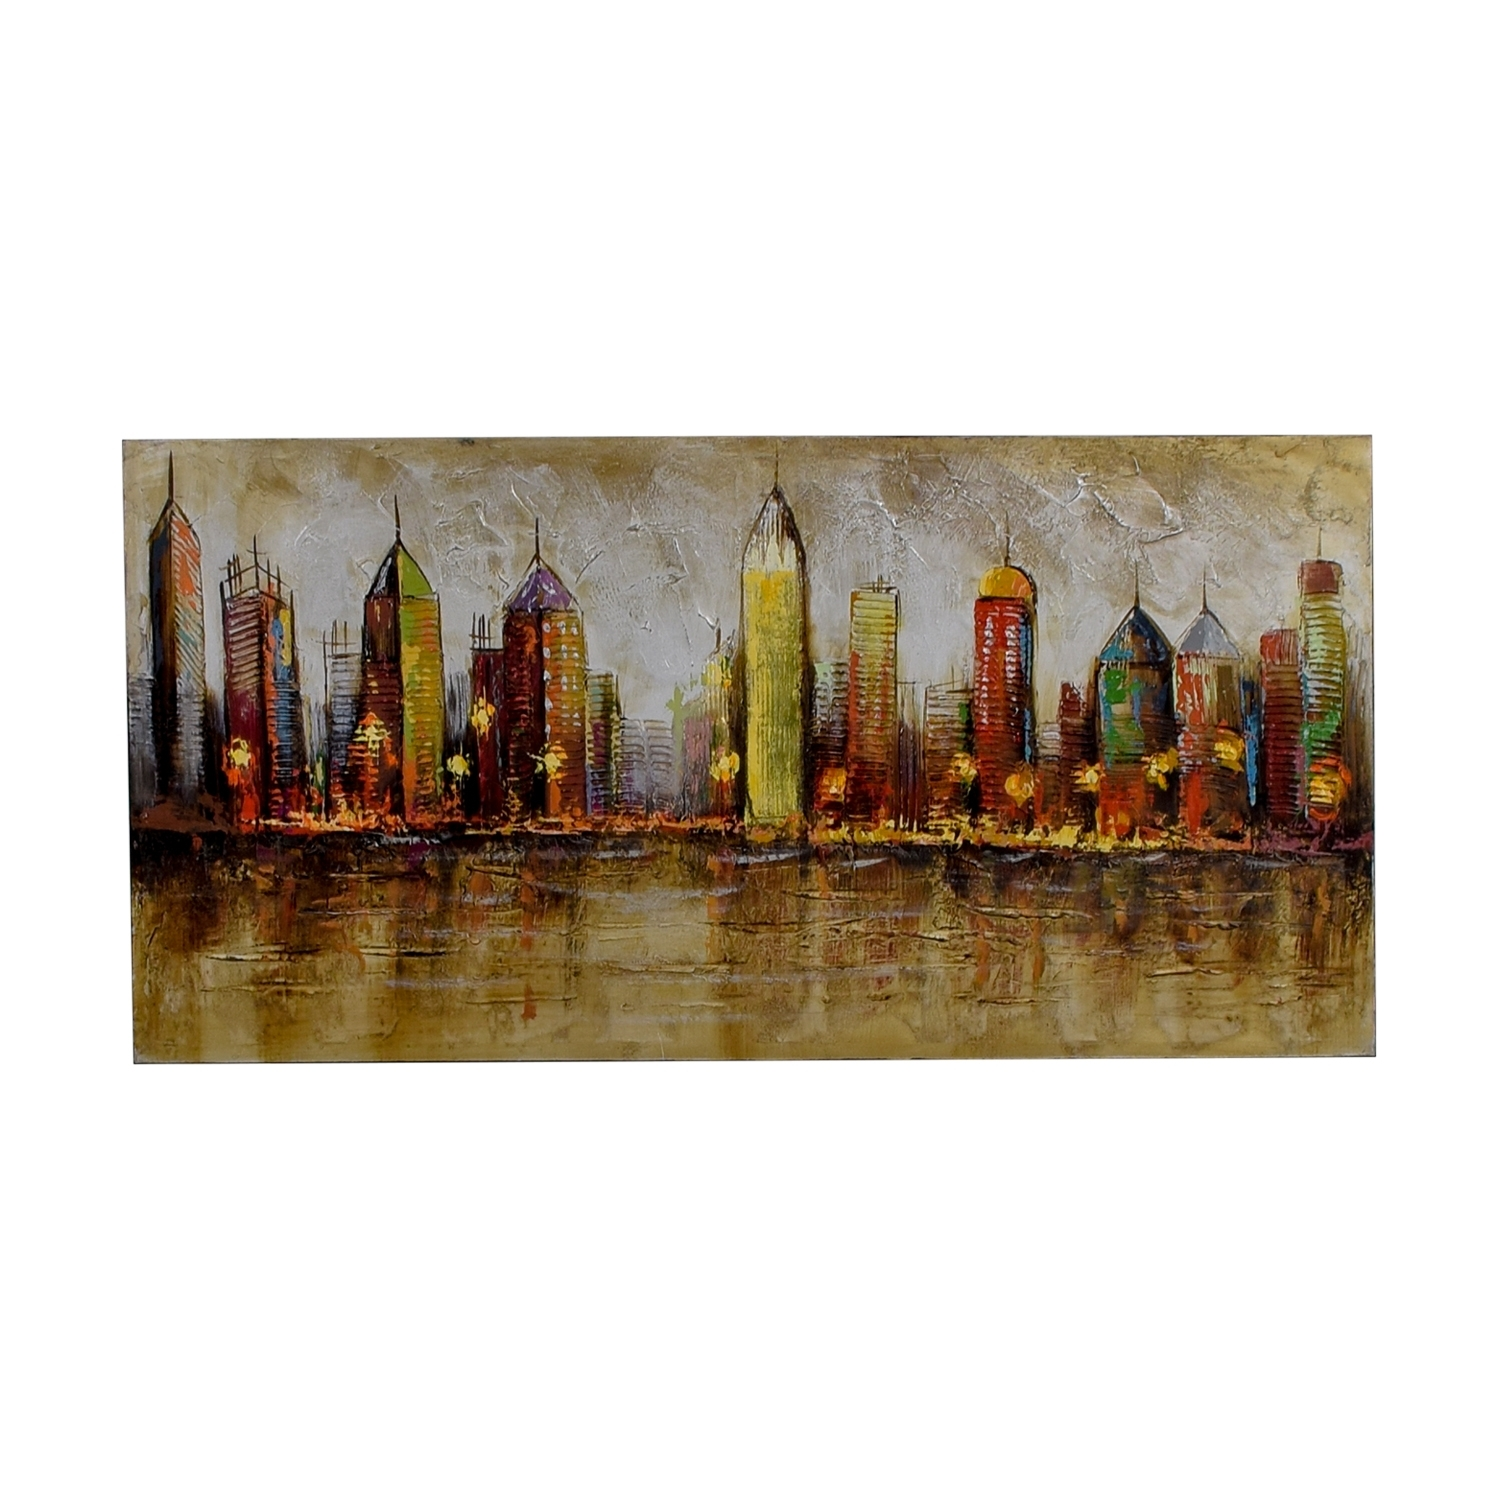 85% Off – Thomas Mangelsen Thomas Mangelsen November Snow Bald With Regard To Most Popular Pier One Abstract Wall Art (View 20 of 20)